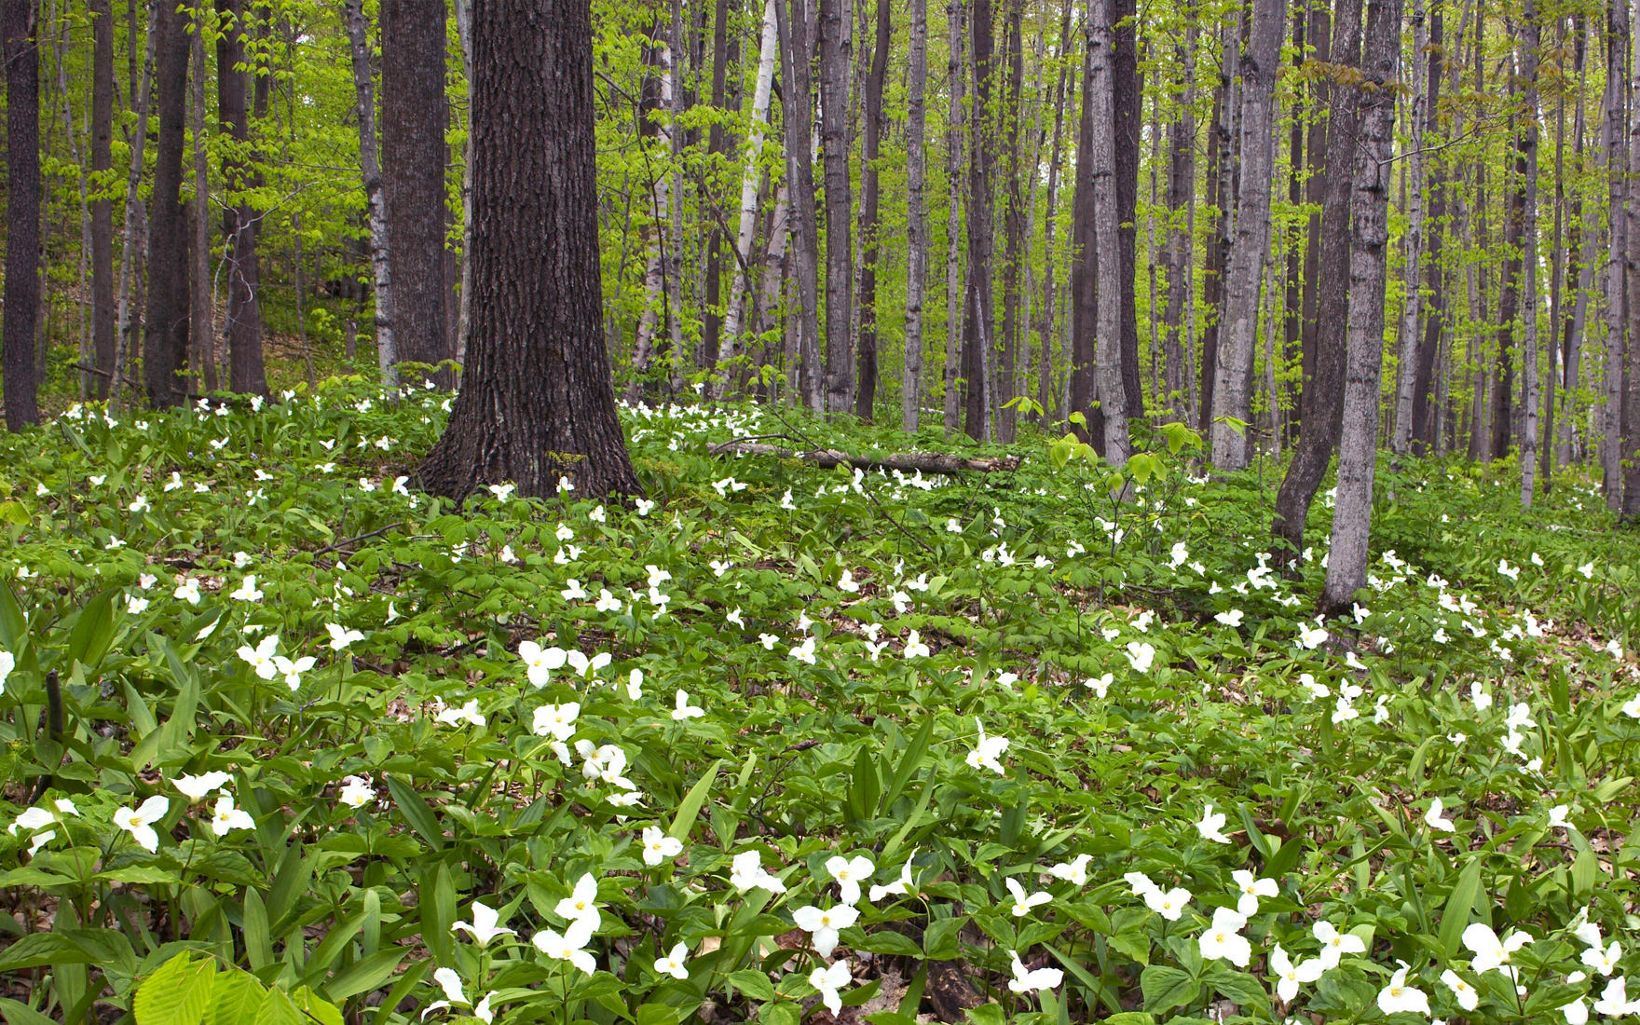 A forest floor blanketed by white flowers.